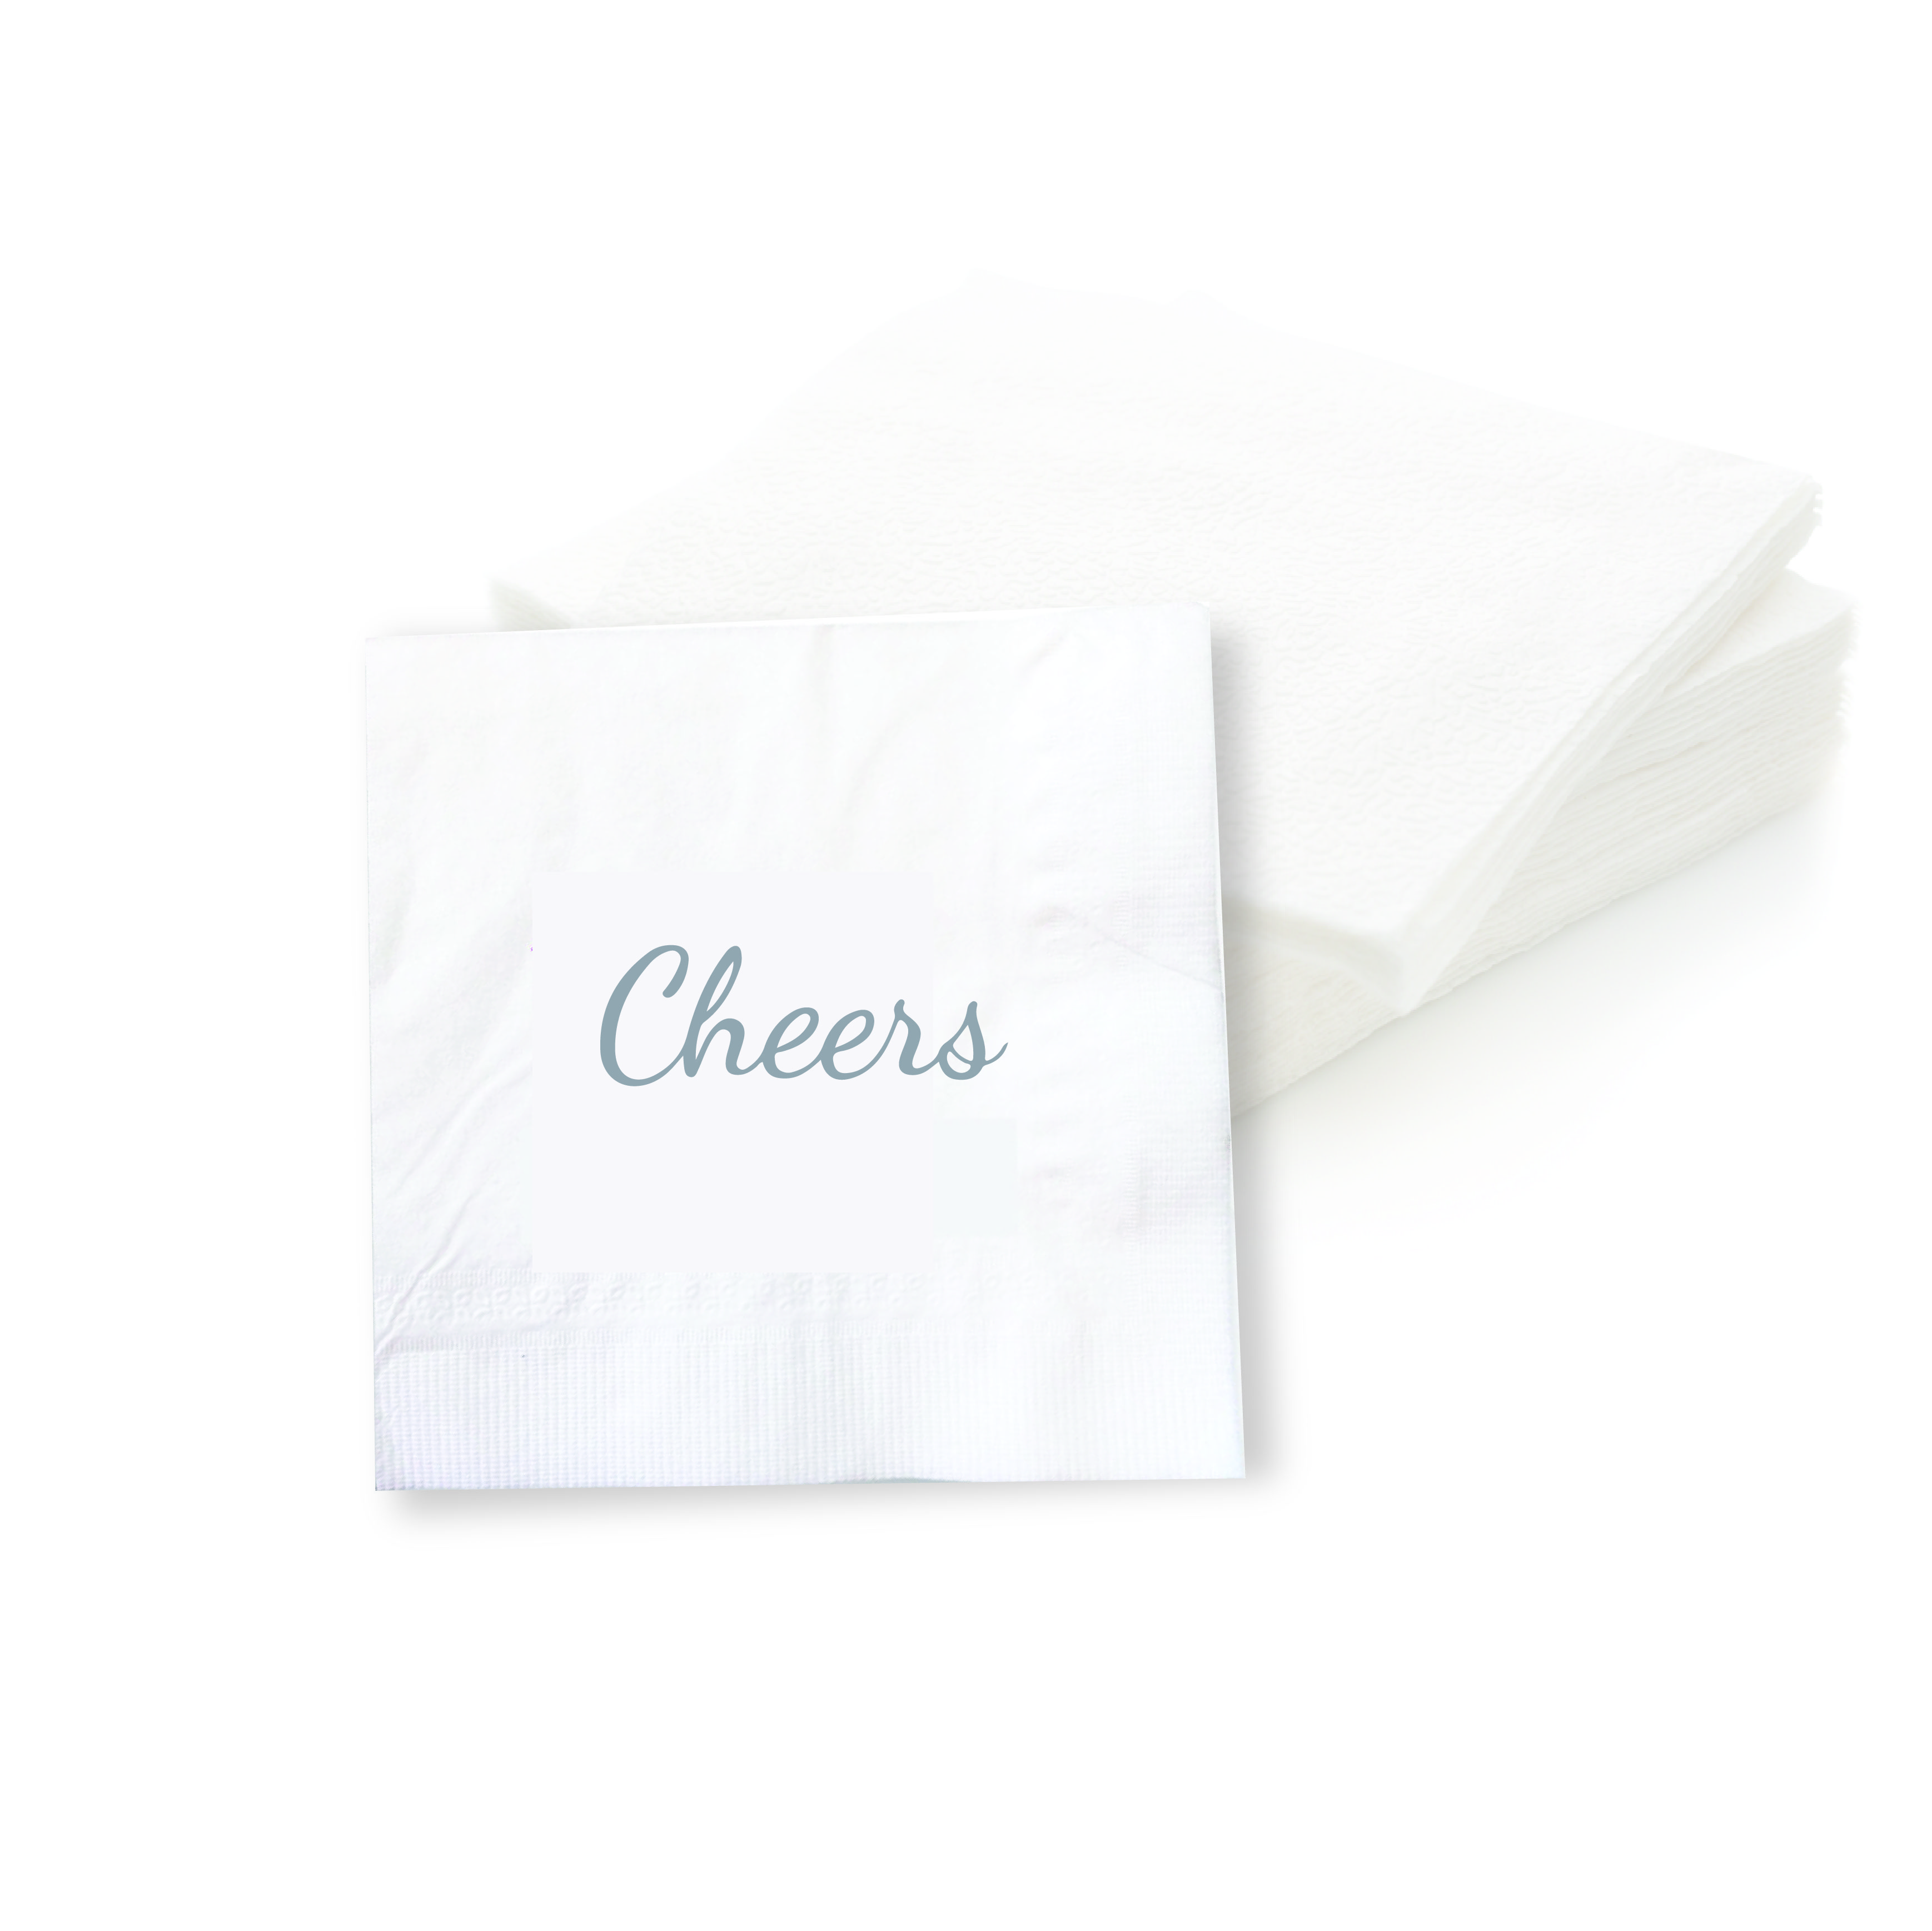 Cheers Cocktail Napkins (Set of 50 Pieces)